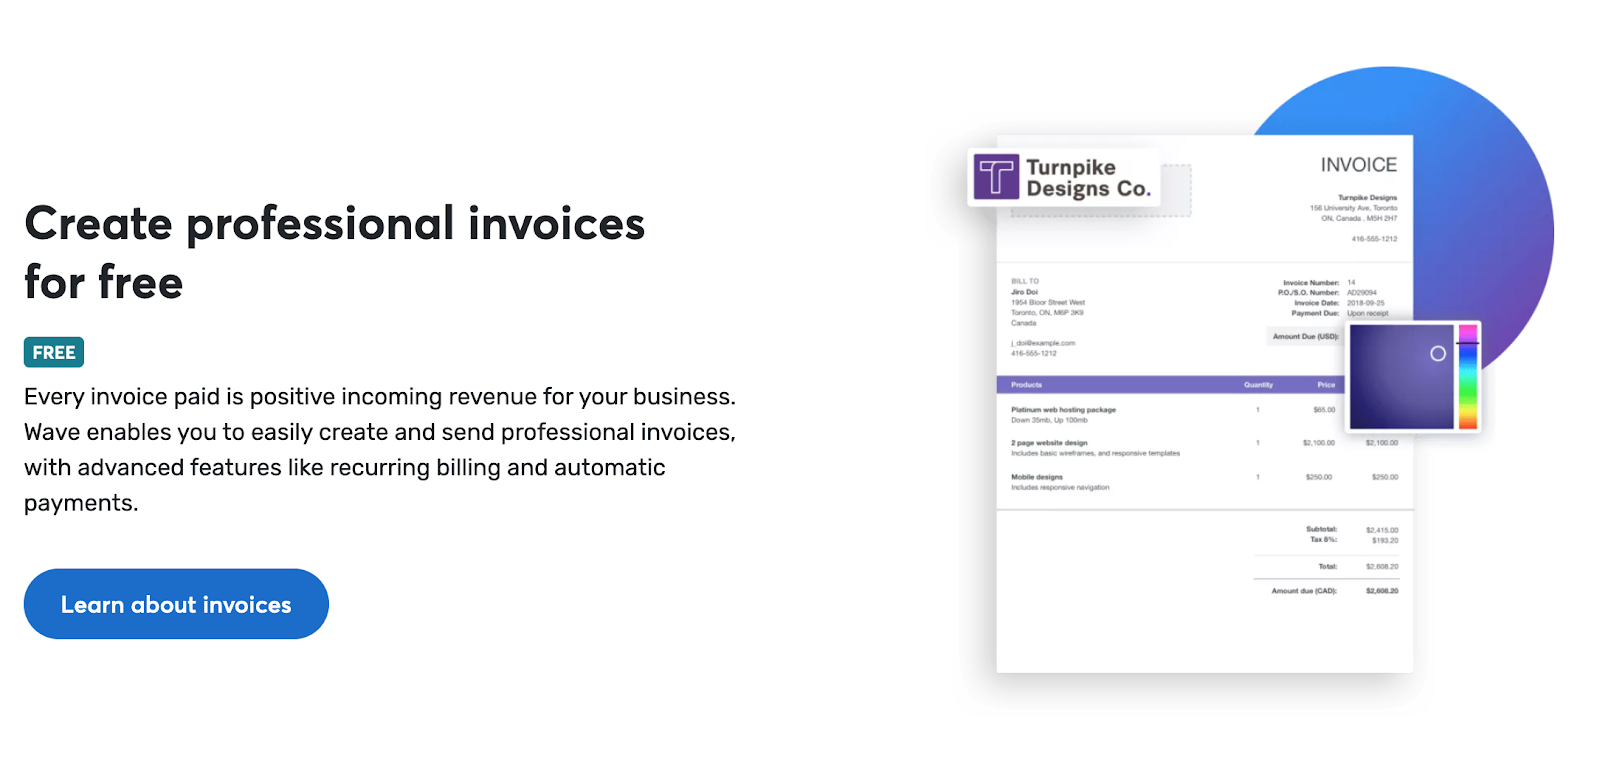 Wave, a tool for creating and sending invoices